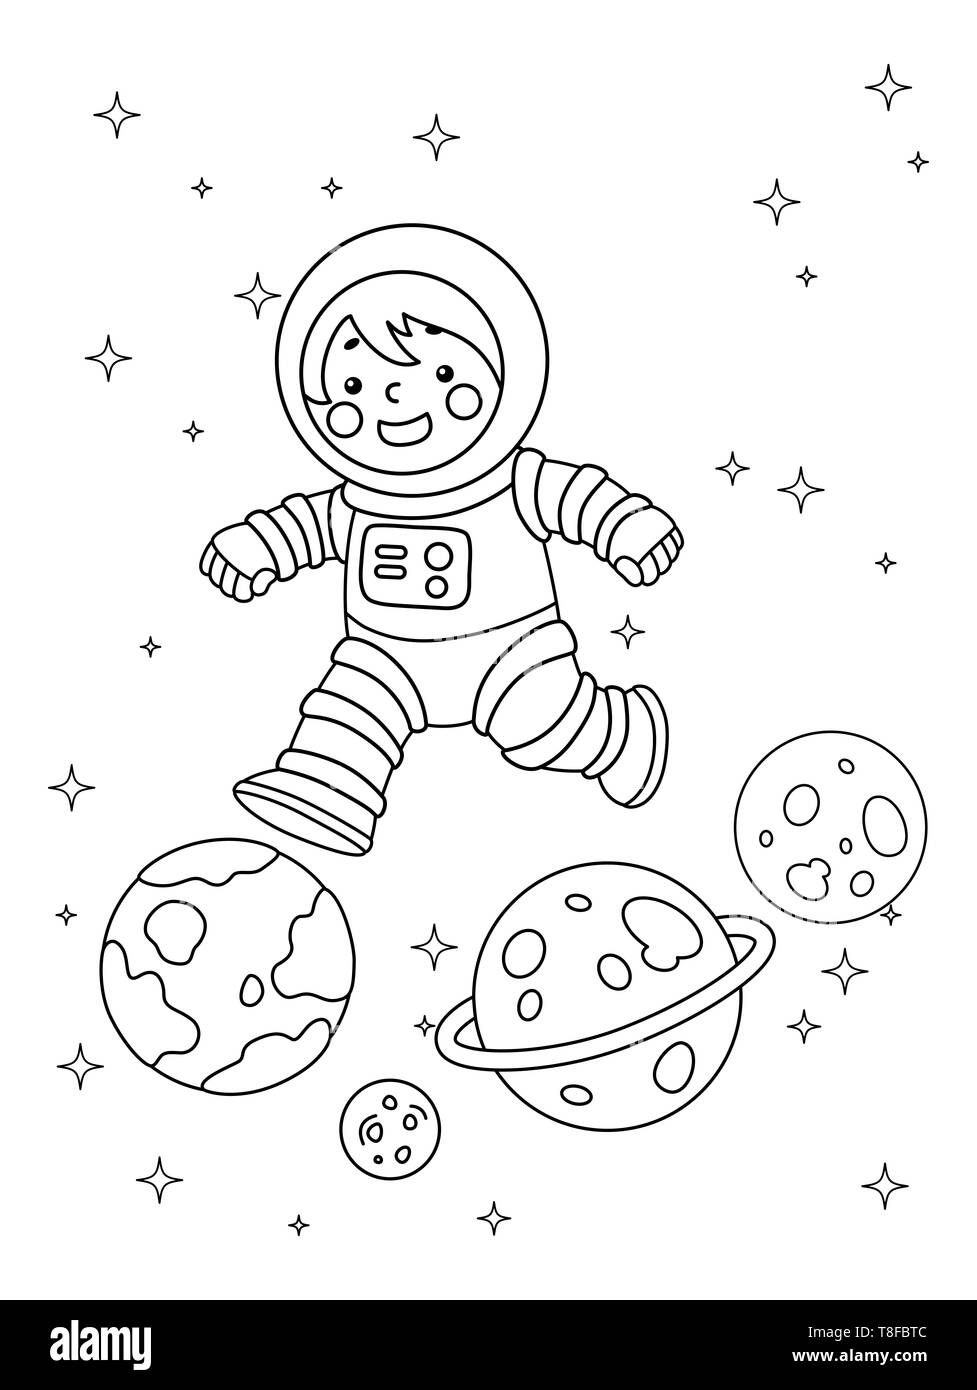 Astronaut coloring page stock illustration. Illustration of ... | 1390x977